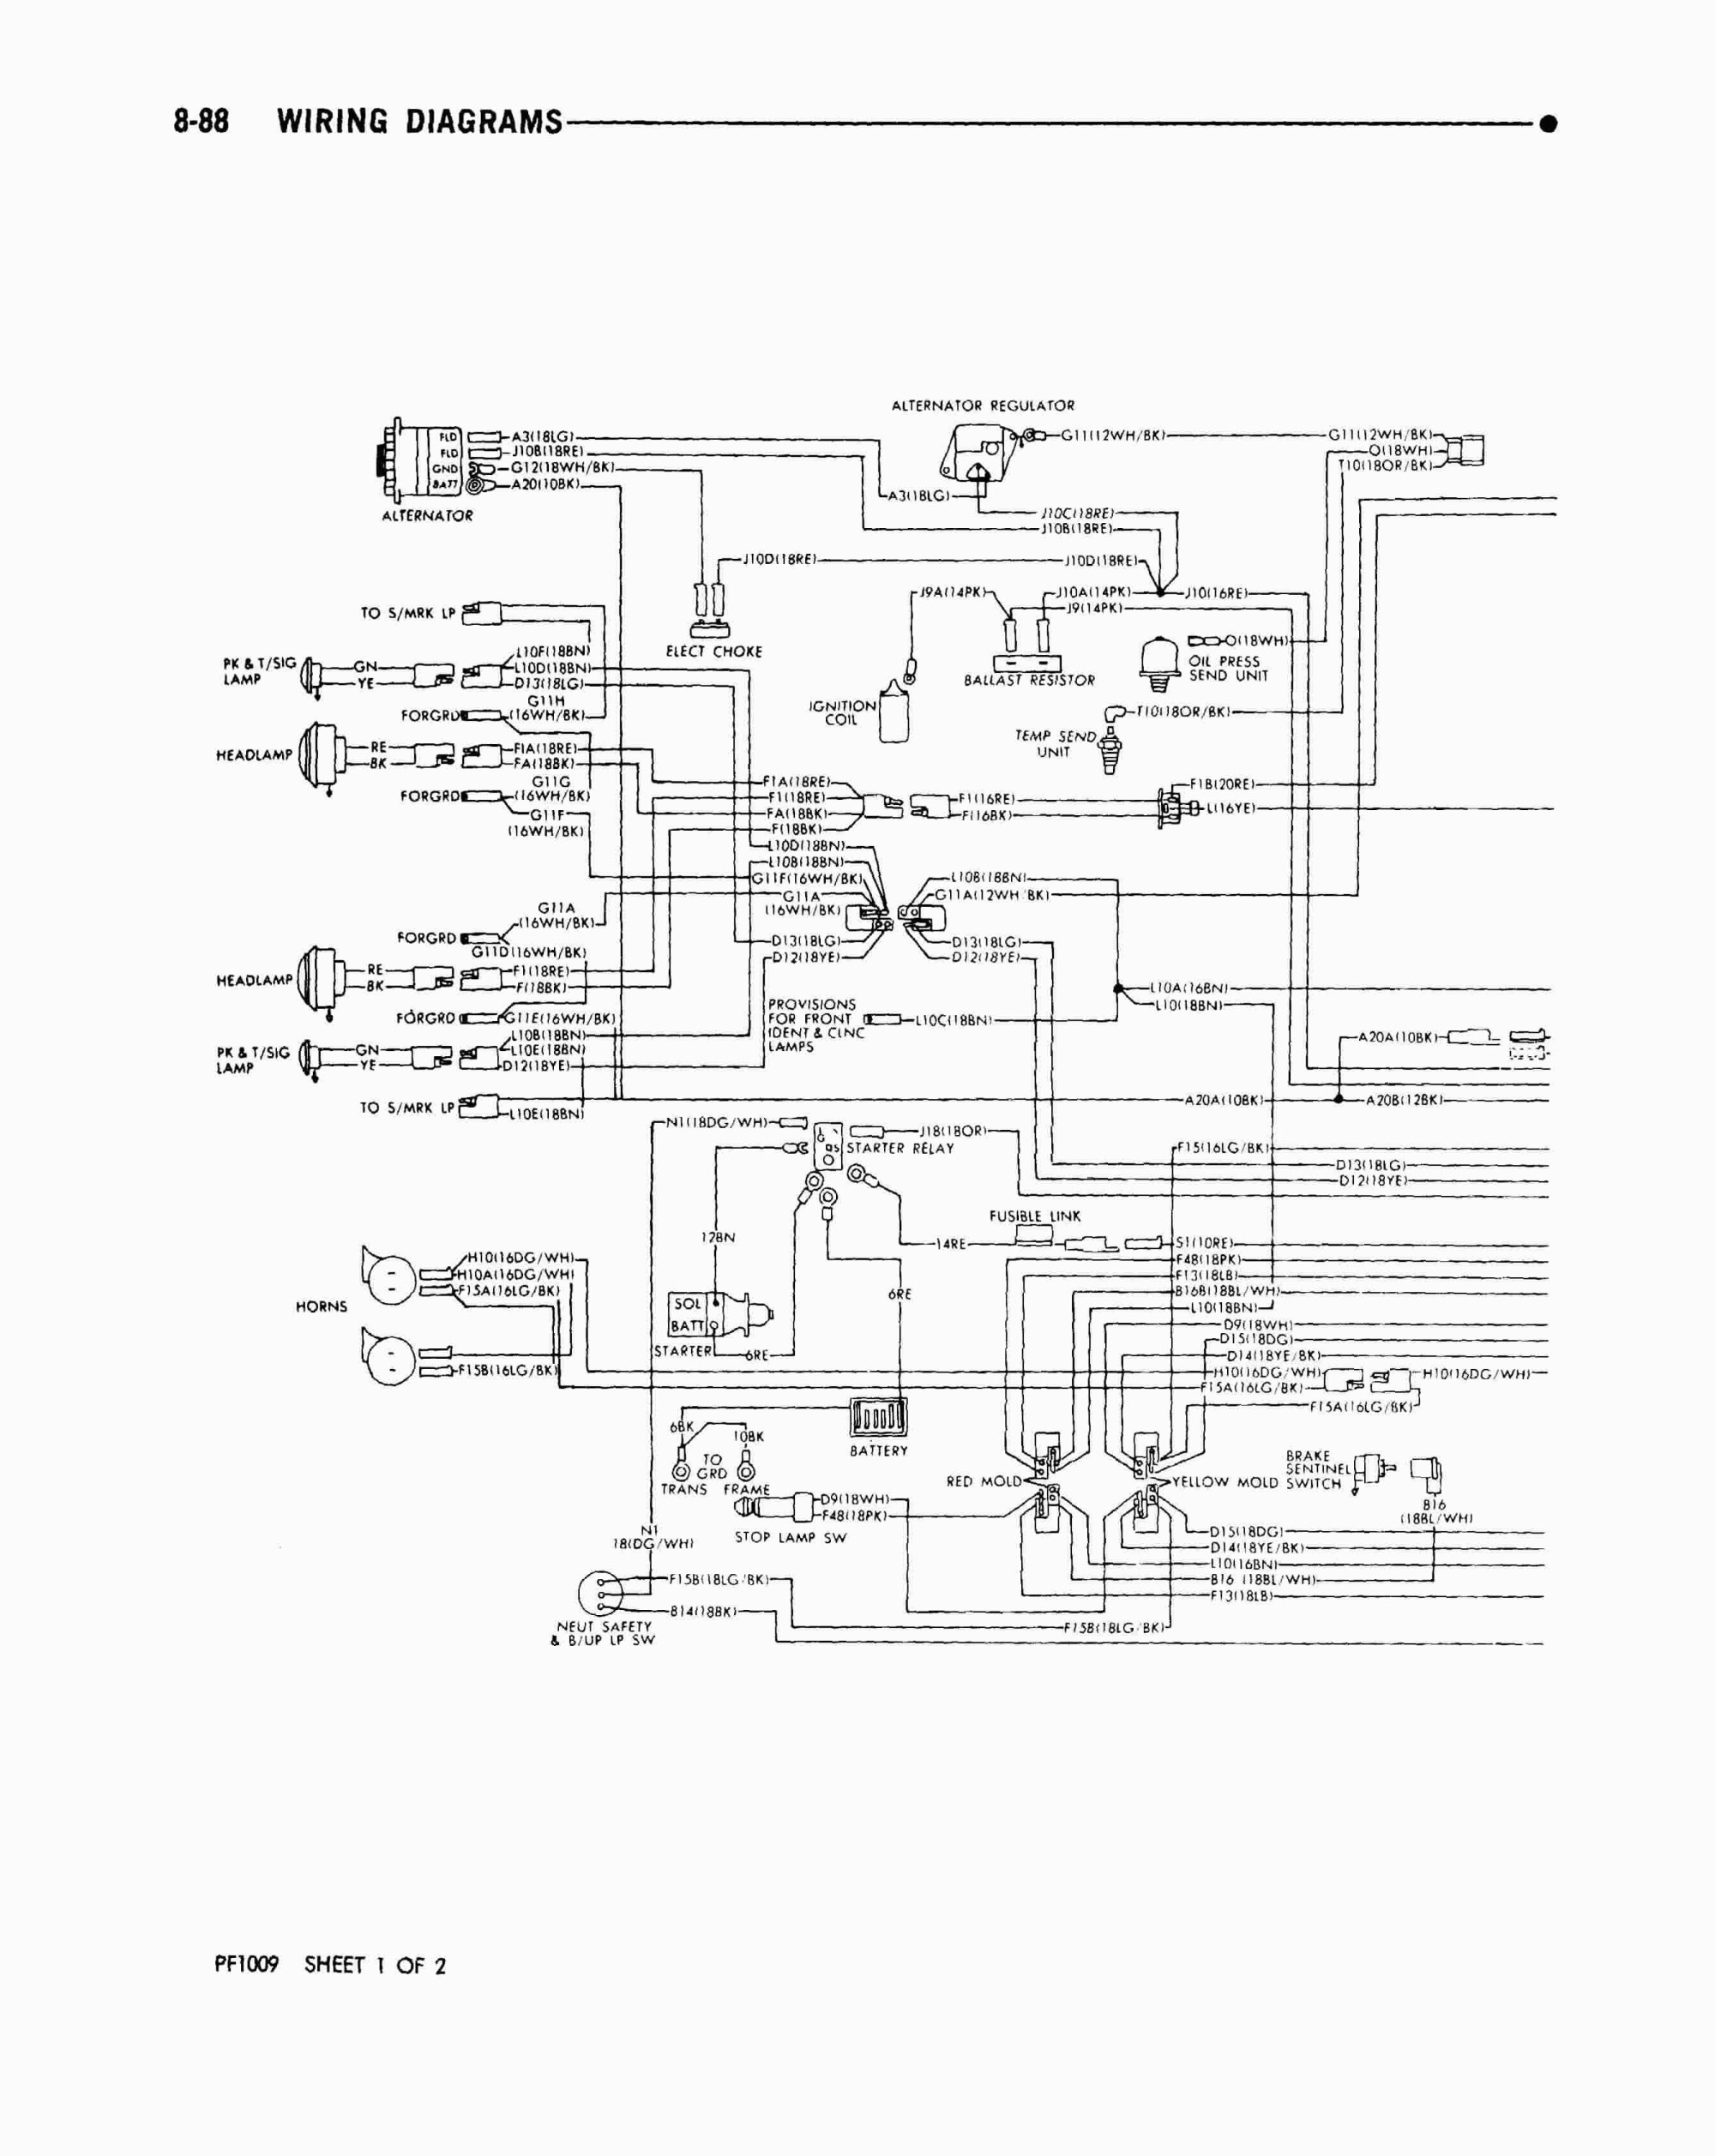 hight resolution of 07 ford f53 wiring diagram wiring diagram schema2007 ford f53 wiring diagrams wiring diagram data today